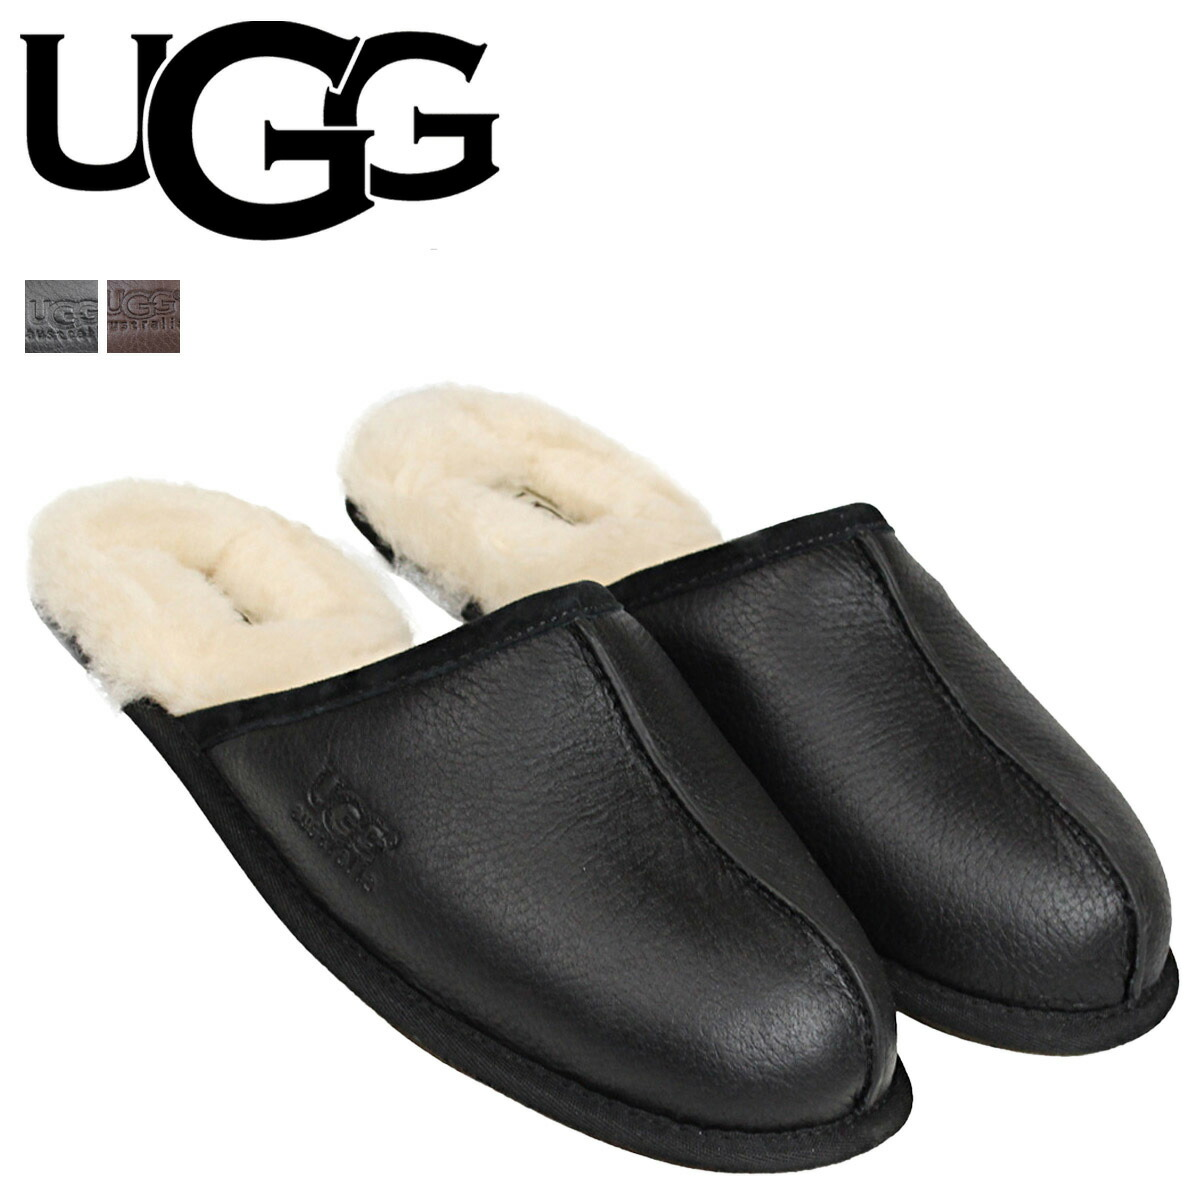 f4a1c39140e Most Popular Ugg Boots 2016 - cheap watches mgc-gas.com